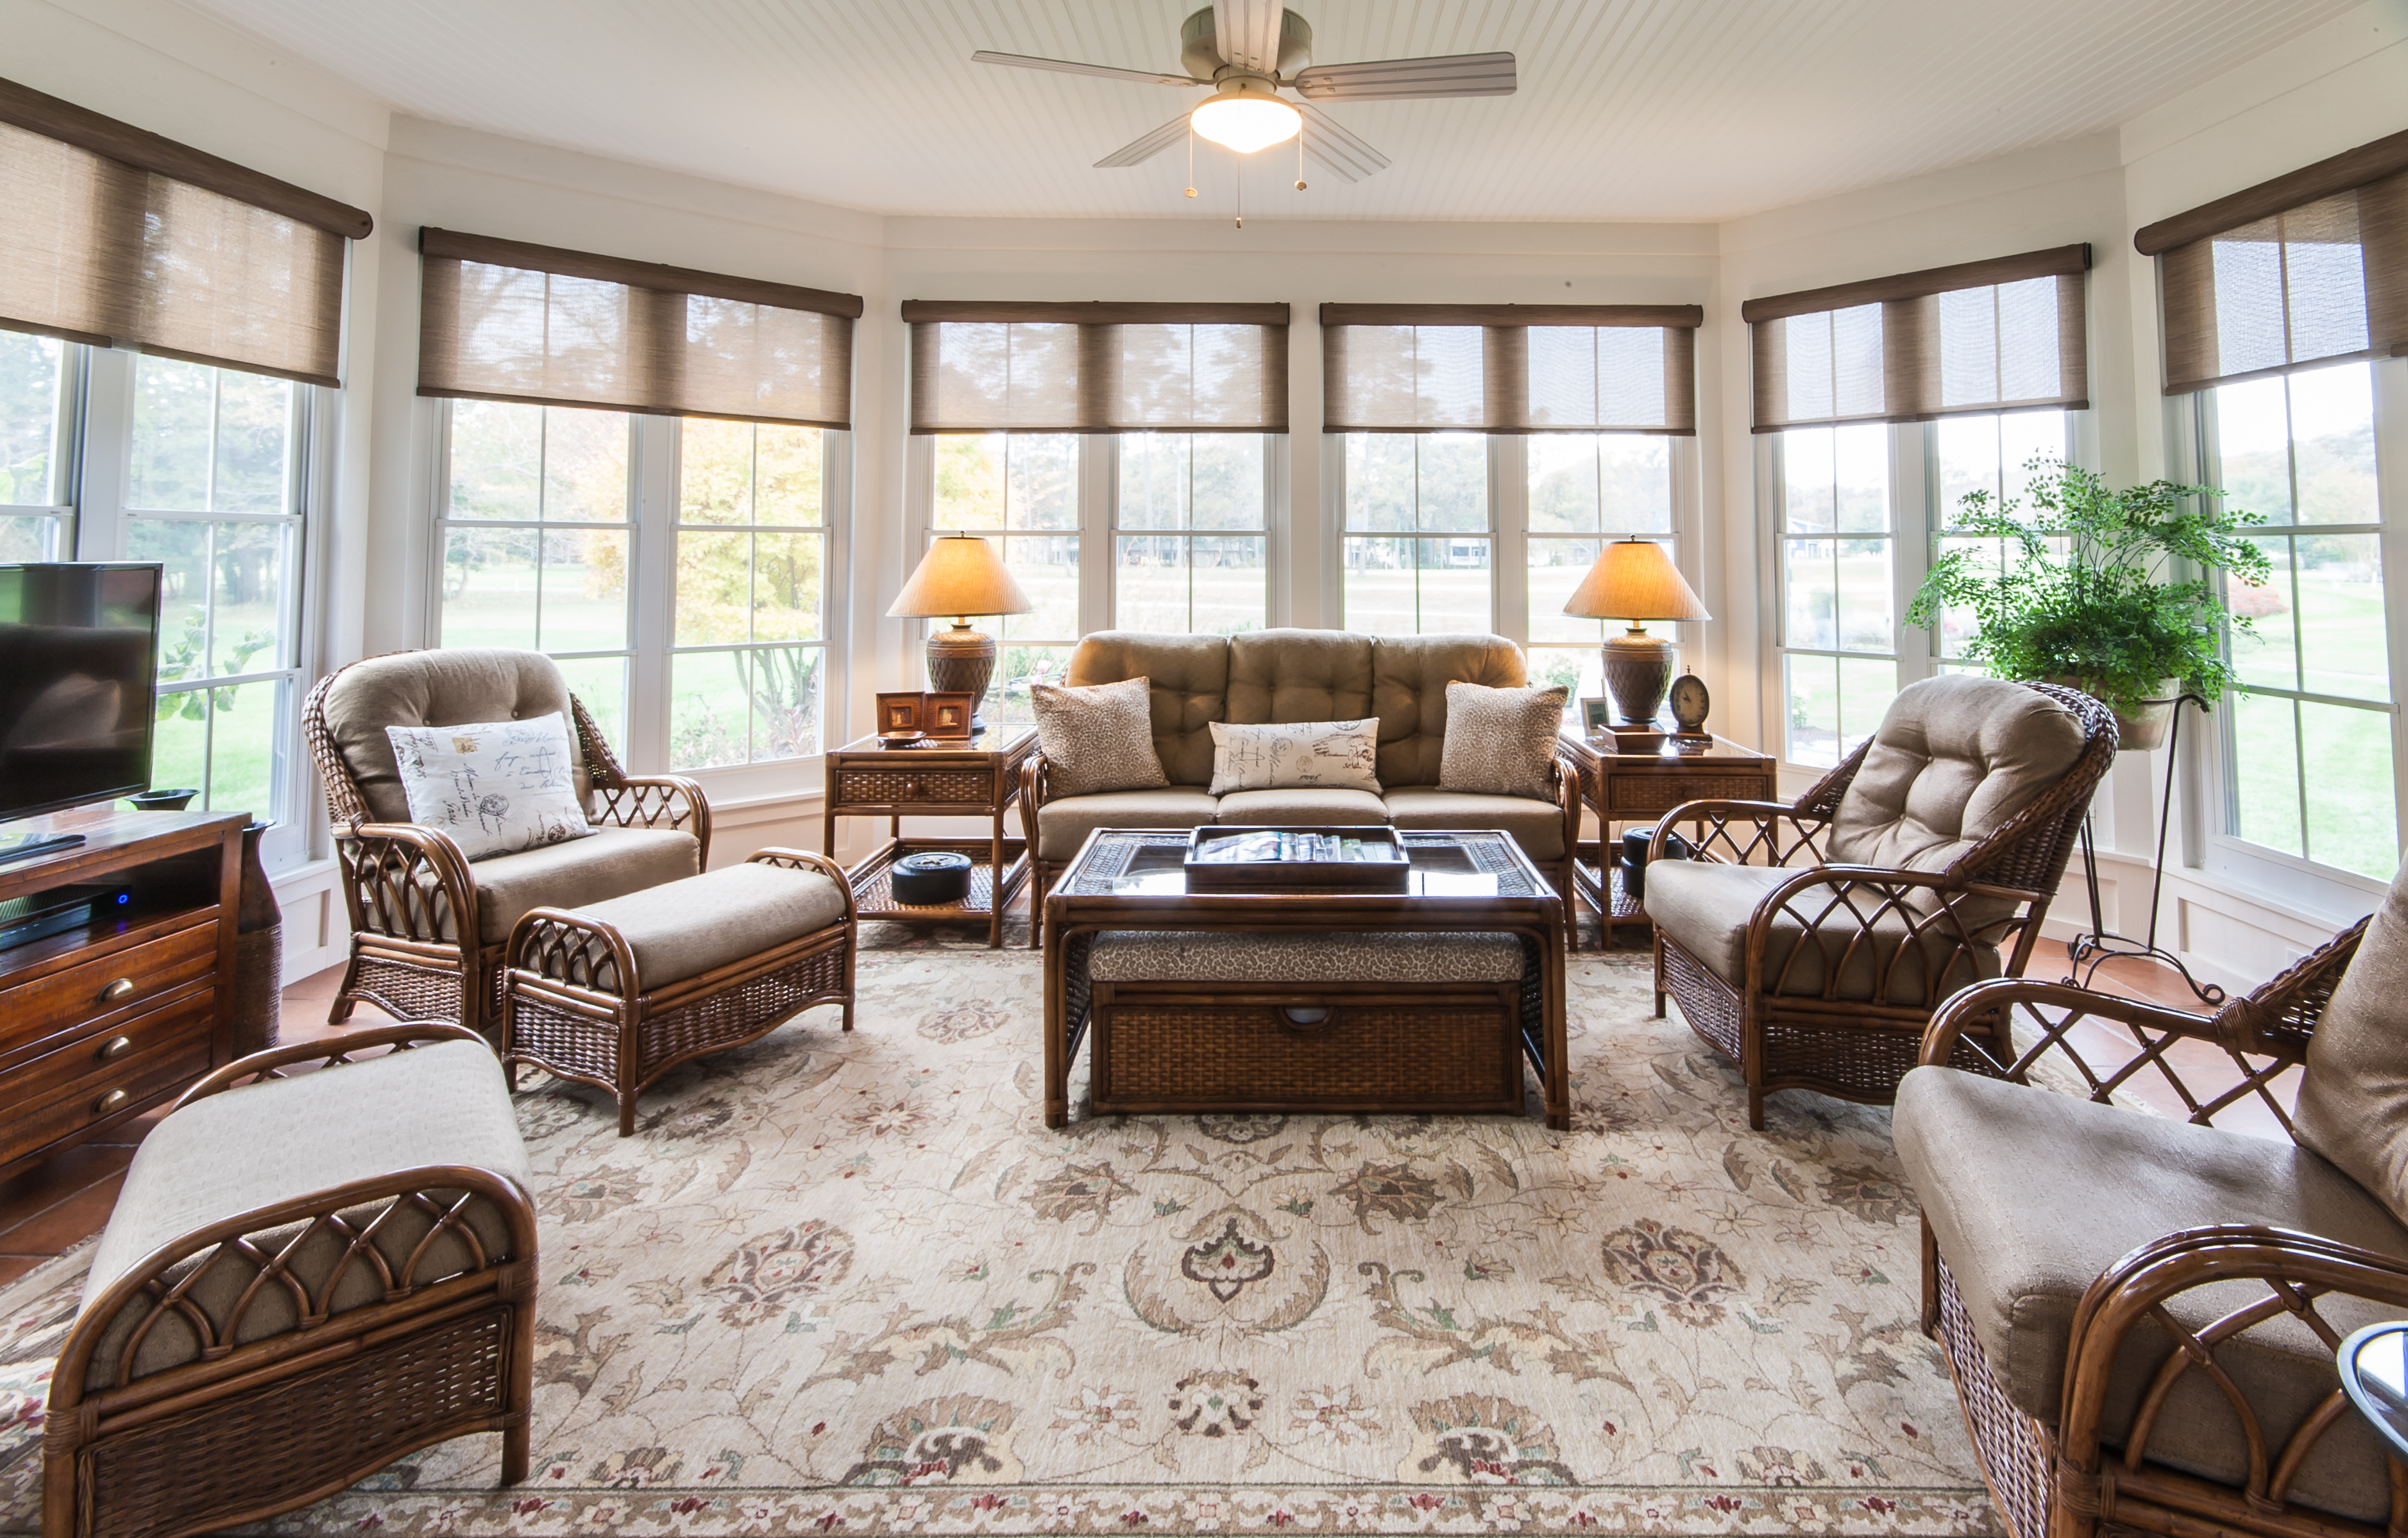 Vinyl windows are affordable and pull together a 3 season room.